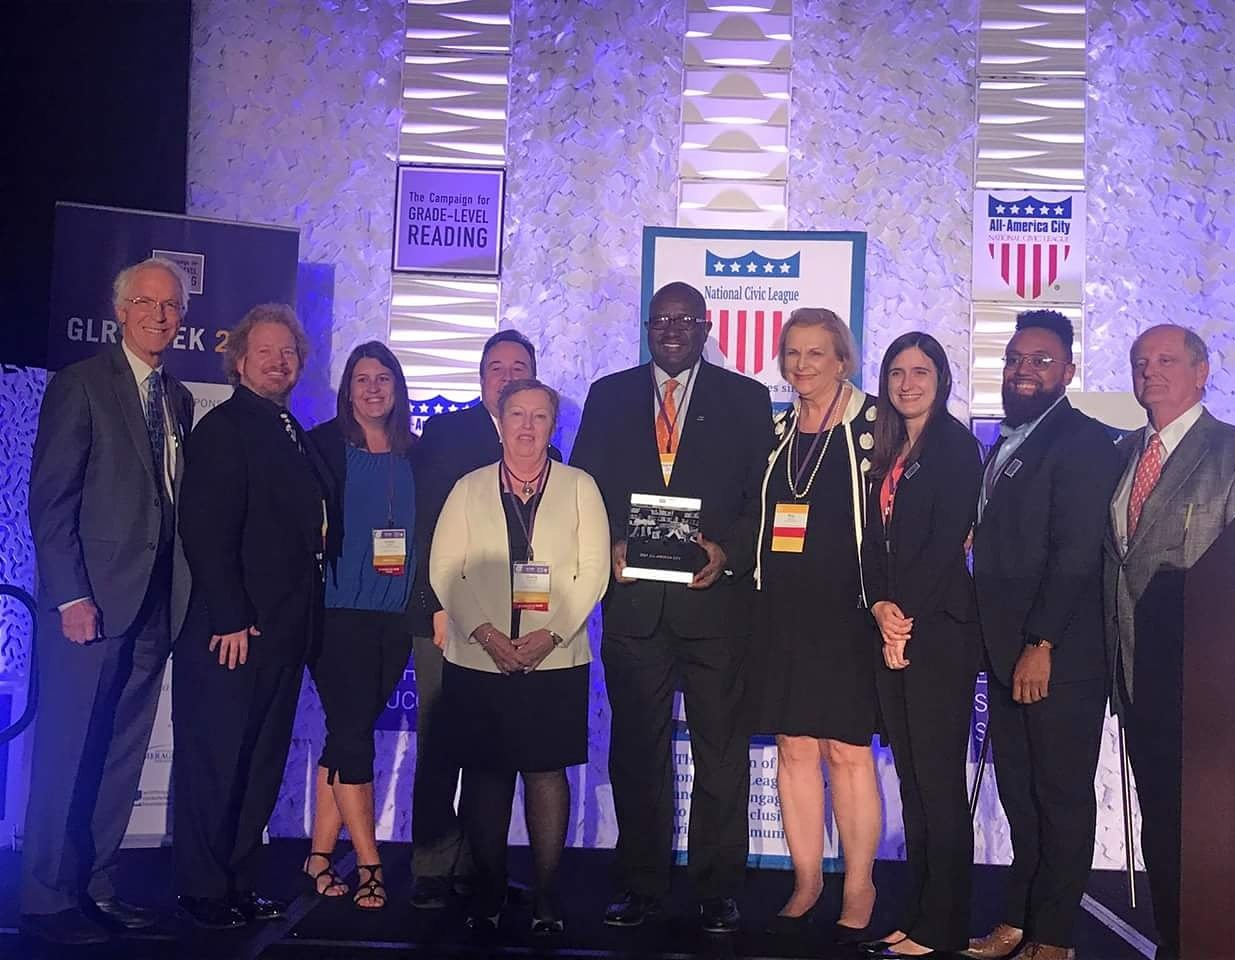 Forgot to post the picture! Here's the #roanoke team, including Mayor Lea! #GLRWeek https://t.co/qtvoBZabMo